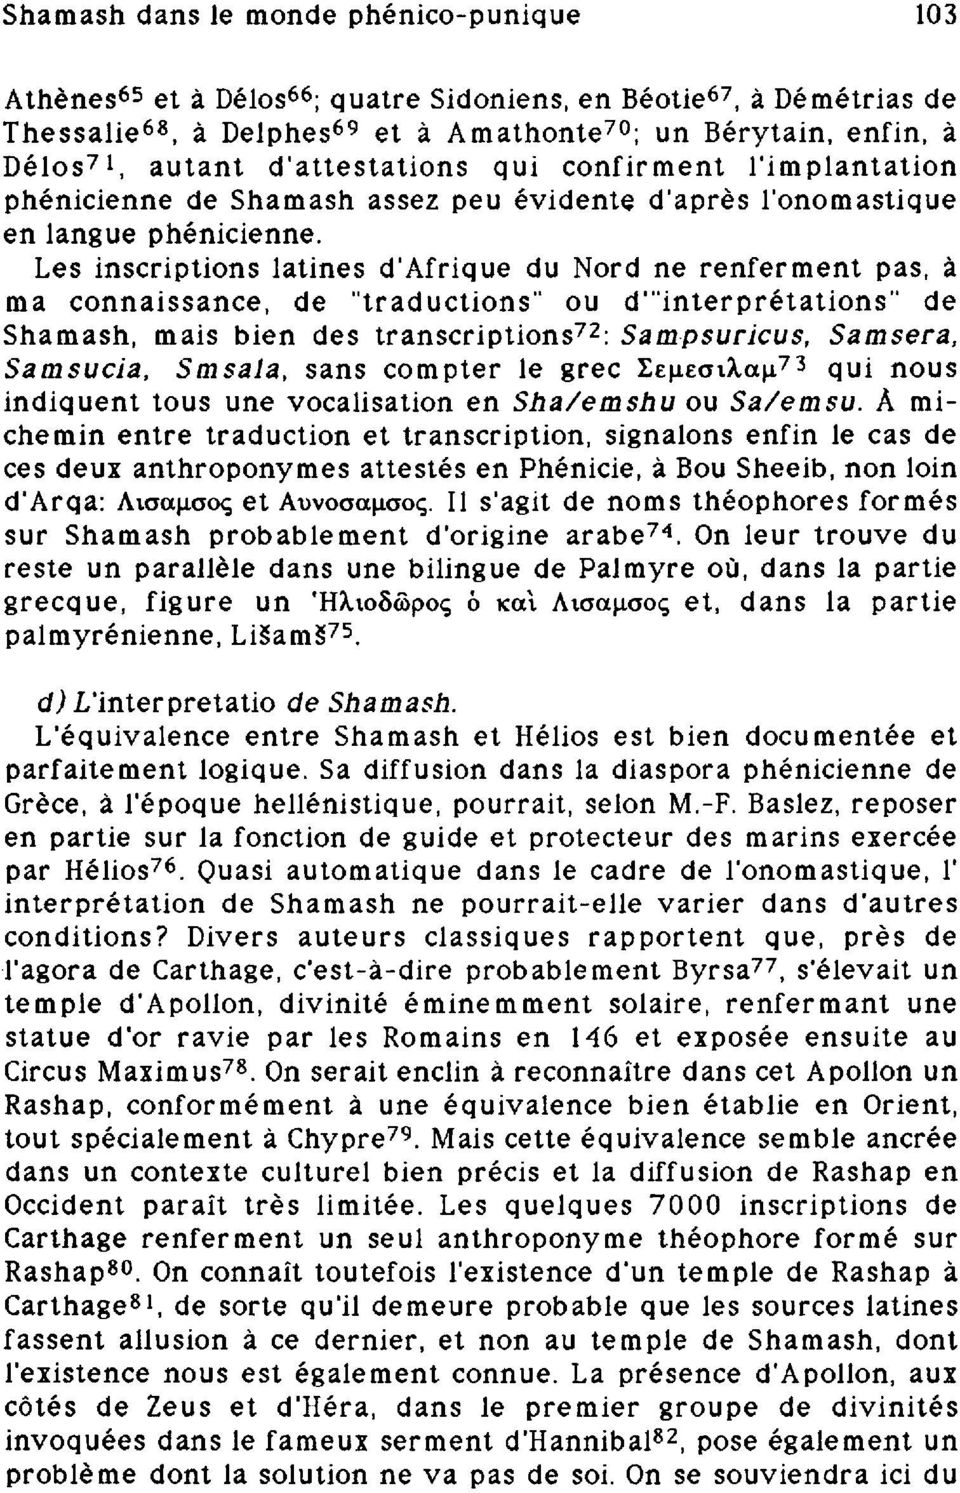 "Les inscriptions latines d'afrique du Nord ne renferment pas, à ma connaissance, de ""traductions"" ou d'interprétations"" de Shamash, mais bien des transcriptions 72 : Sampsuricus, Samsera, Samsucia,"